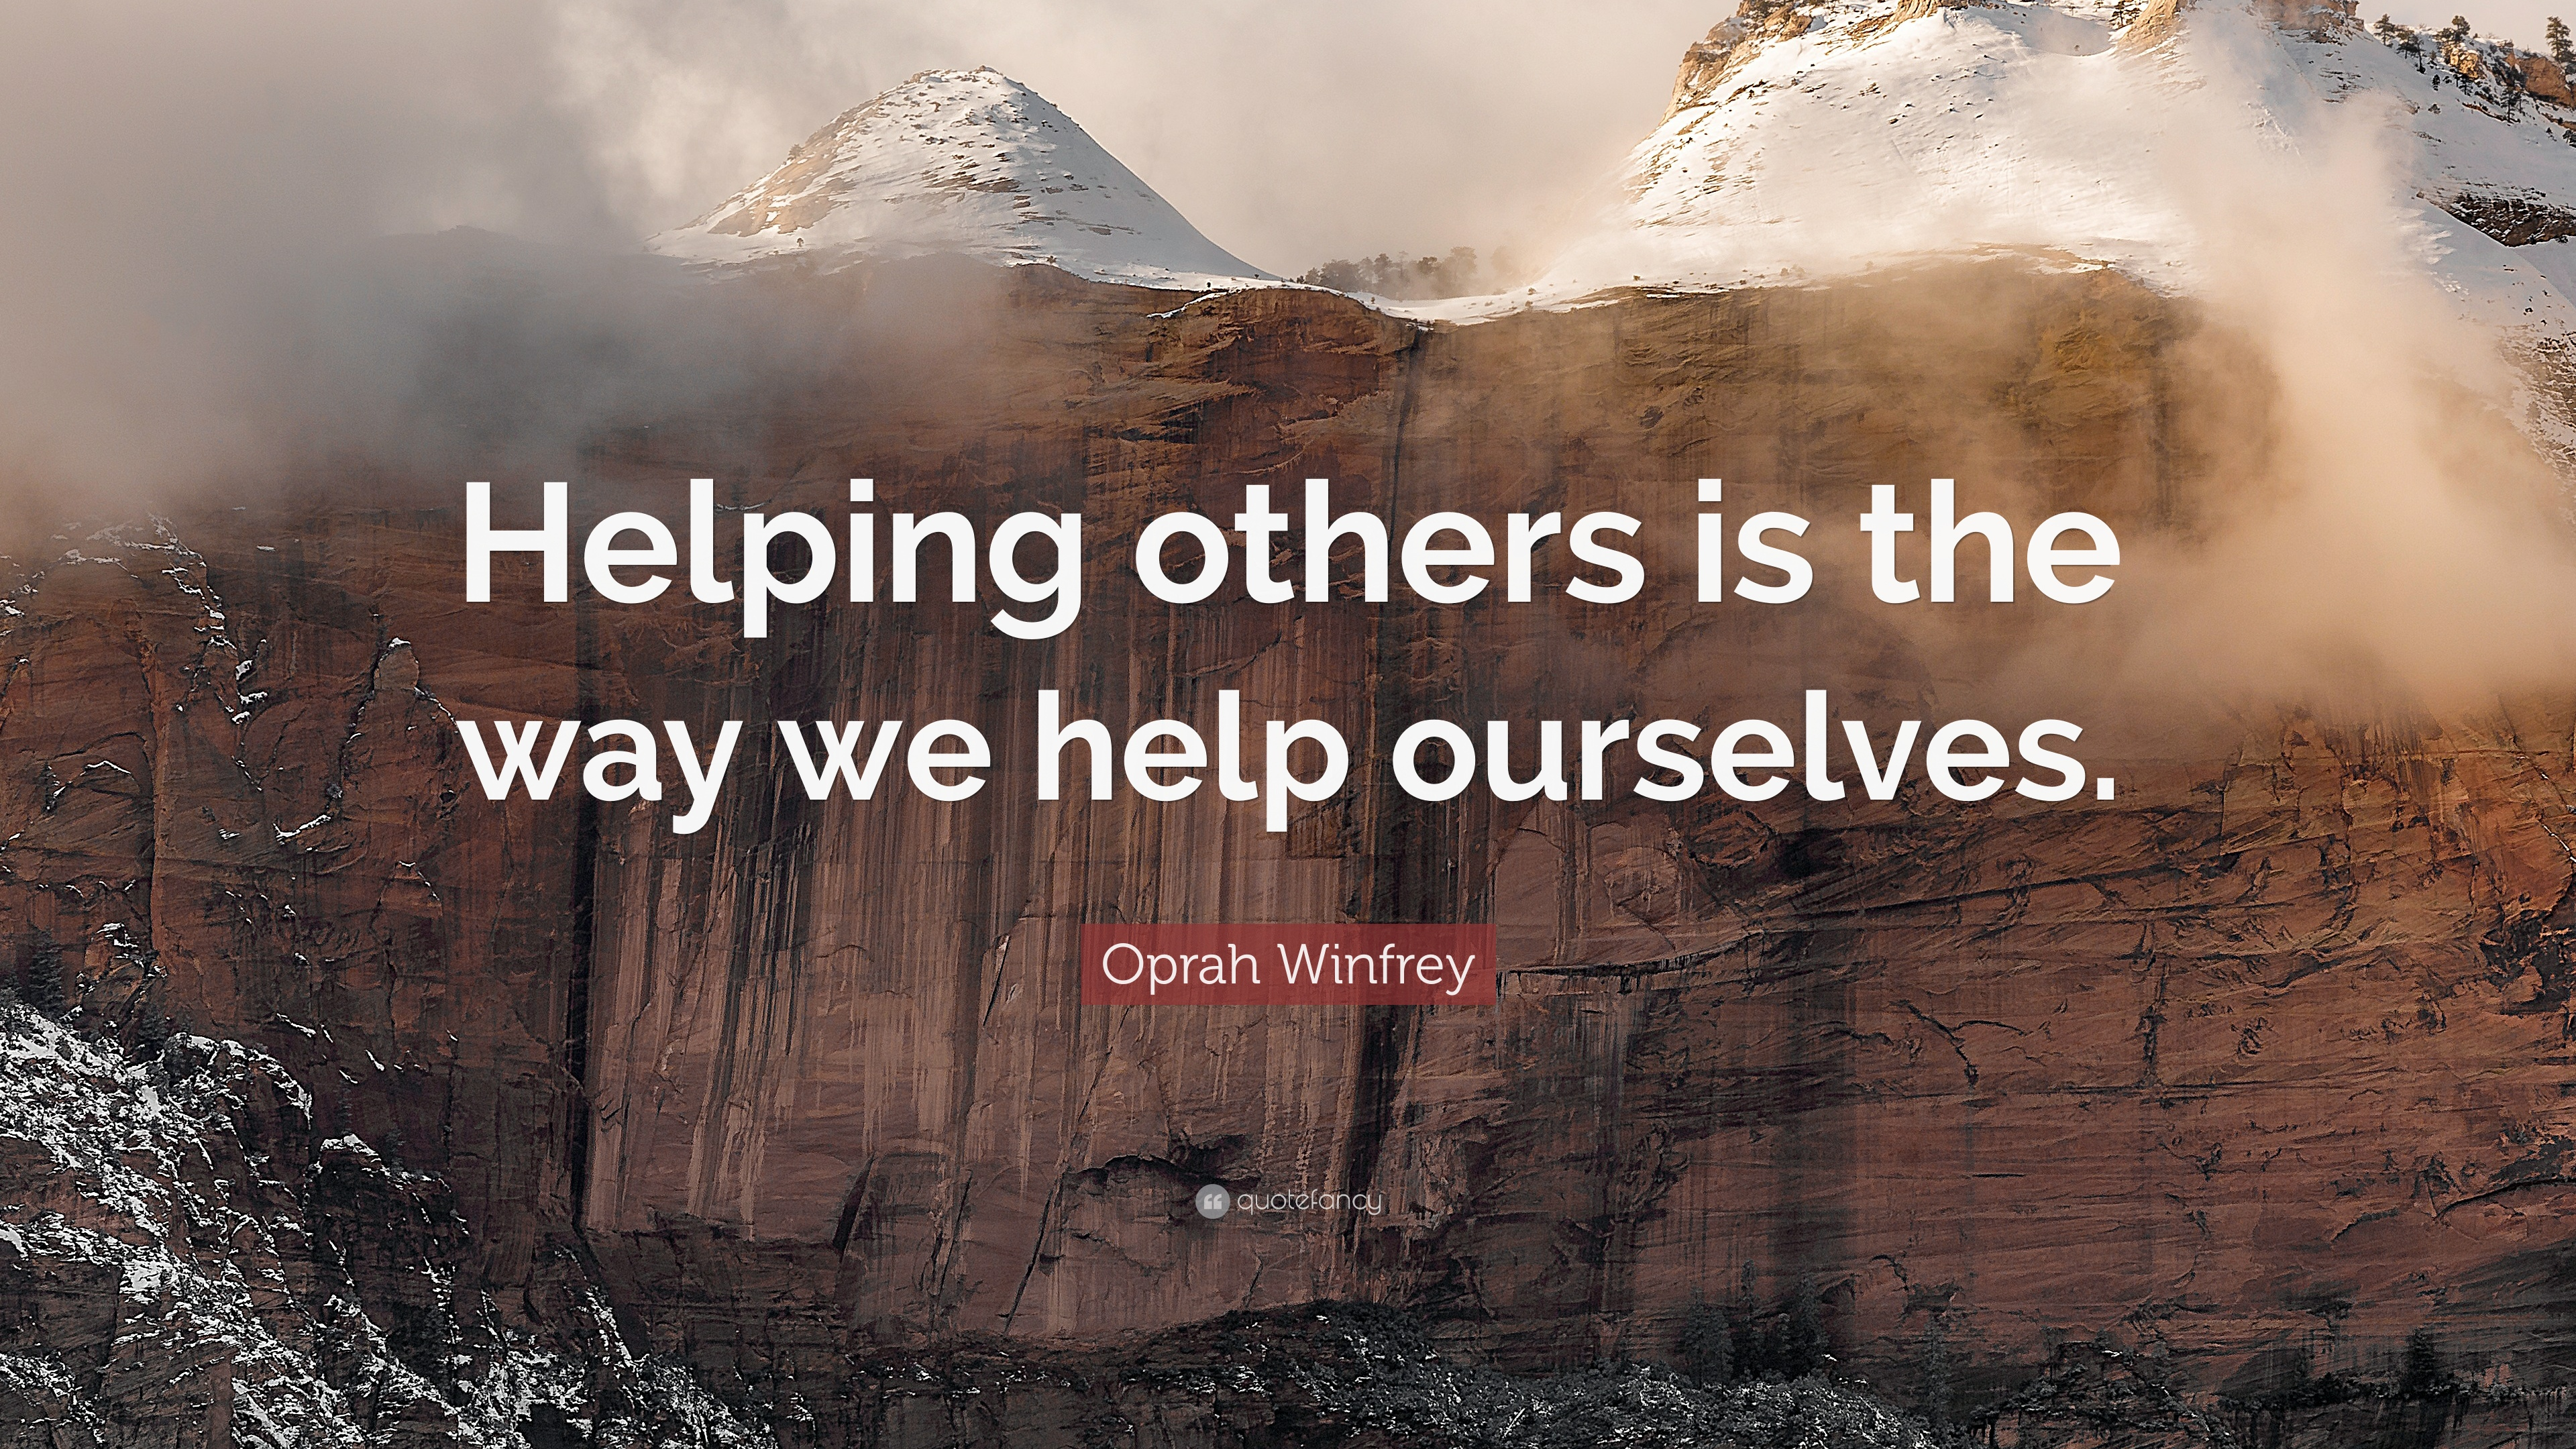 Quotes About Helping Others | Oprah Winfrey Quote Helping Others Is The Way We Help Ourselves